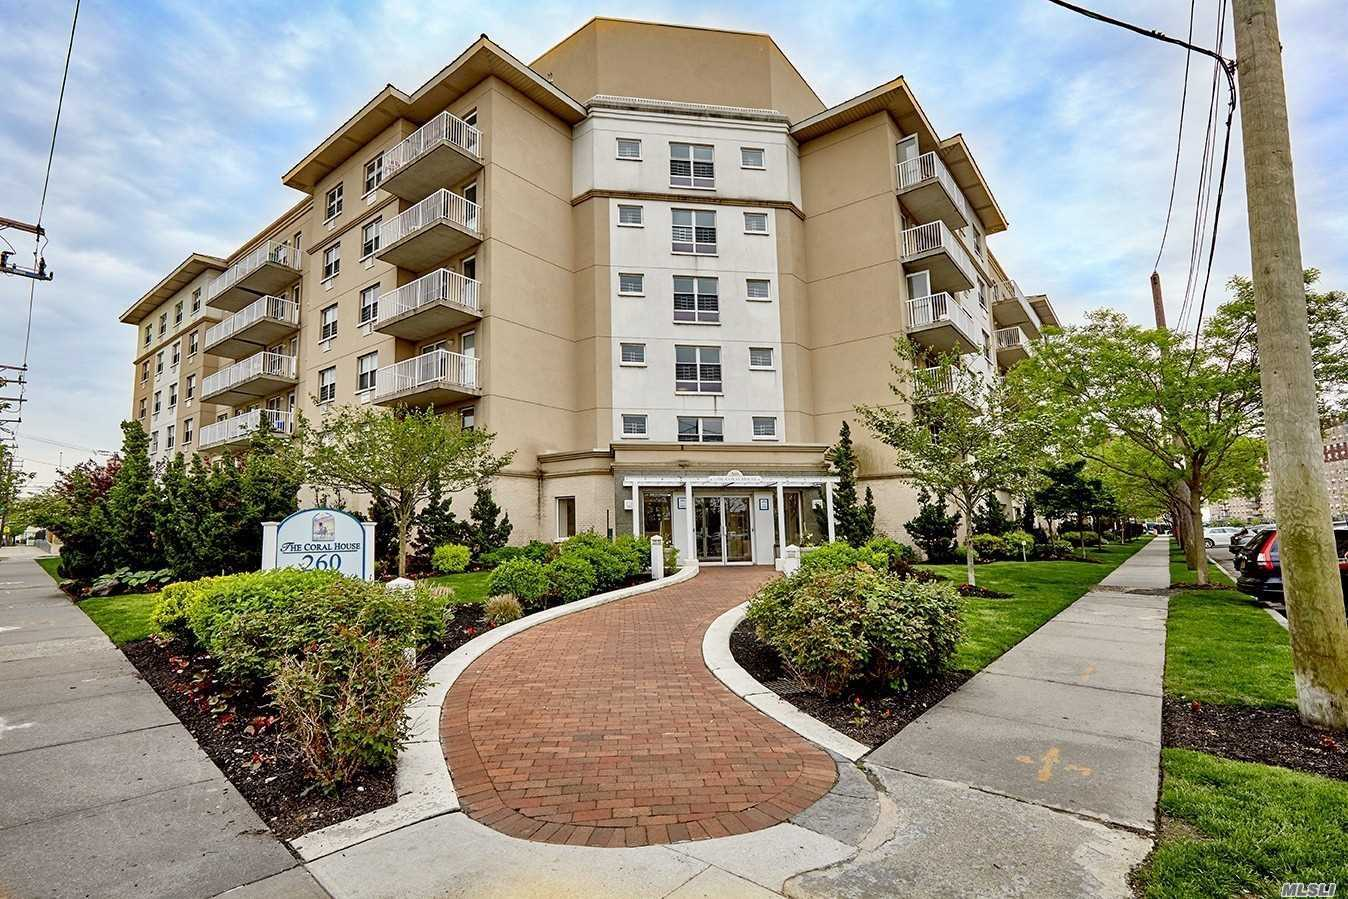 Beautiful 2 Bedrooms Condo In New Building With 15 Tax Abatement. Near Beach With Beautiful Ocean View And Convenience To School, Shopping & Transportation. Subway # A Train Just Few Blocks.